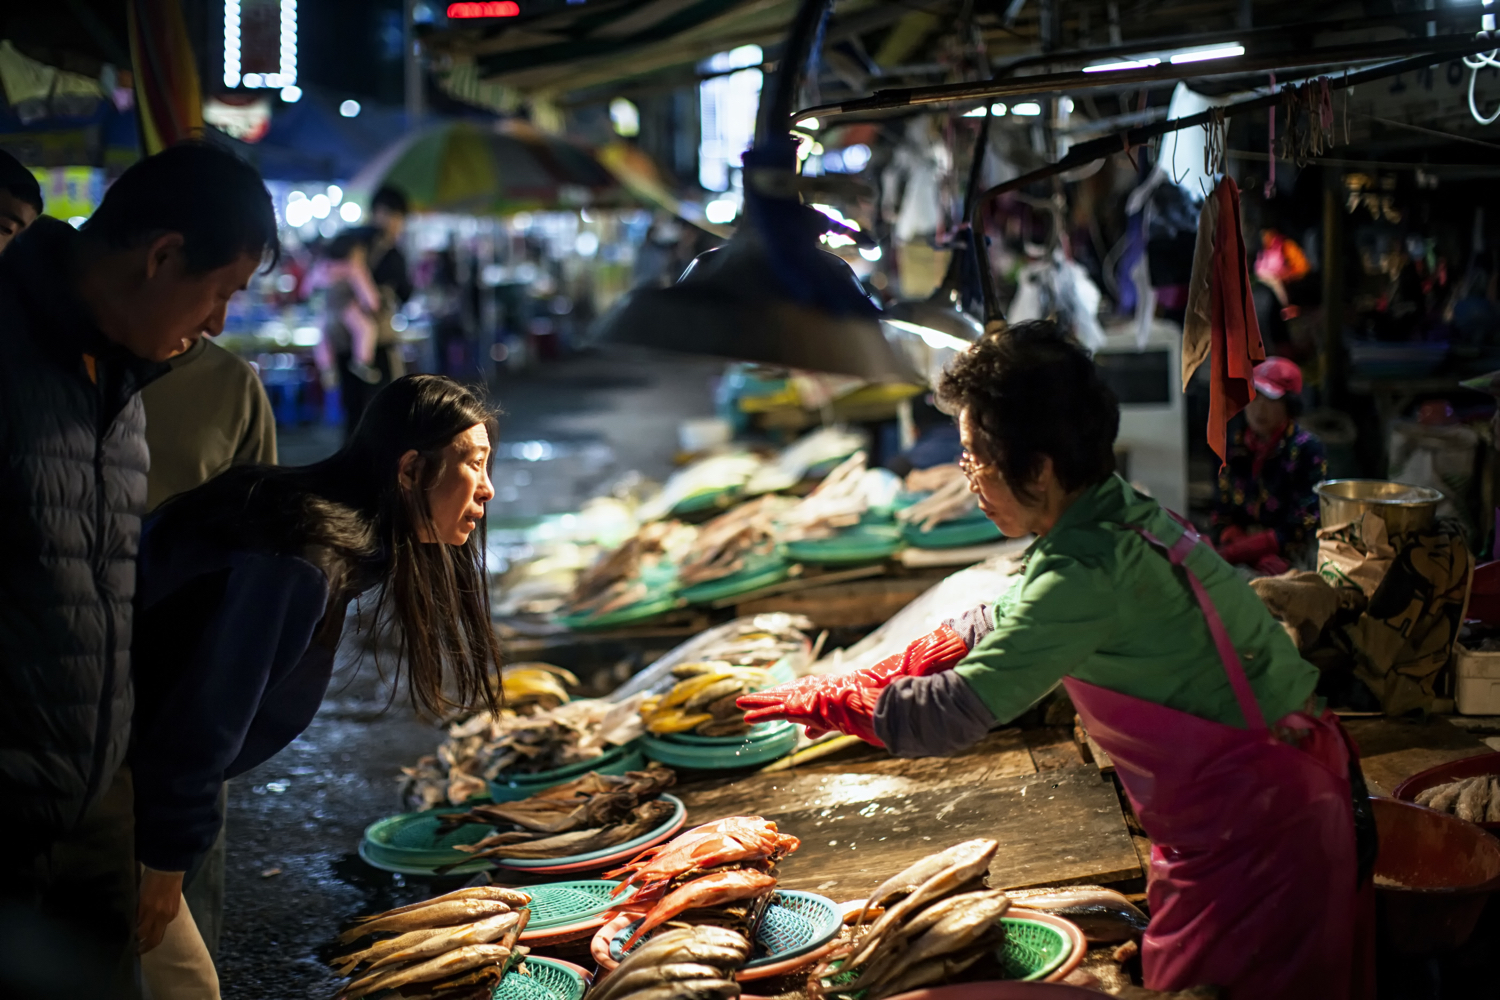 Image: In this photo, a longer focal length of 135mm was used. Markets are great for interactions be...